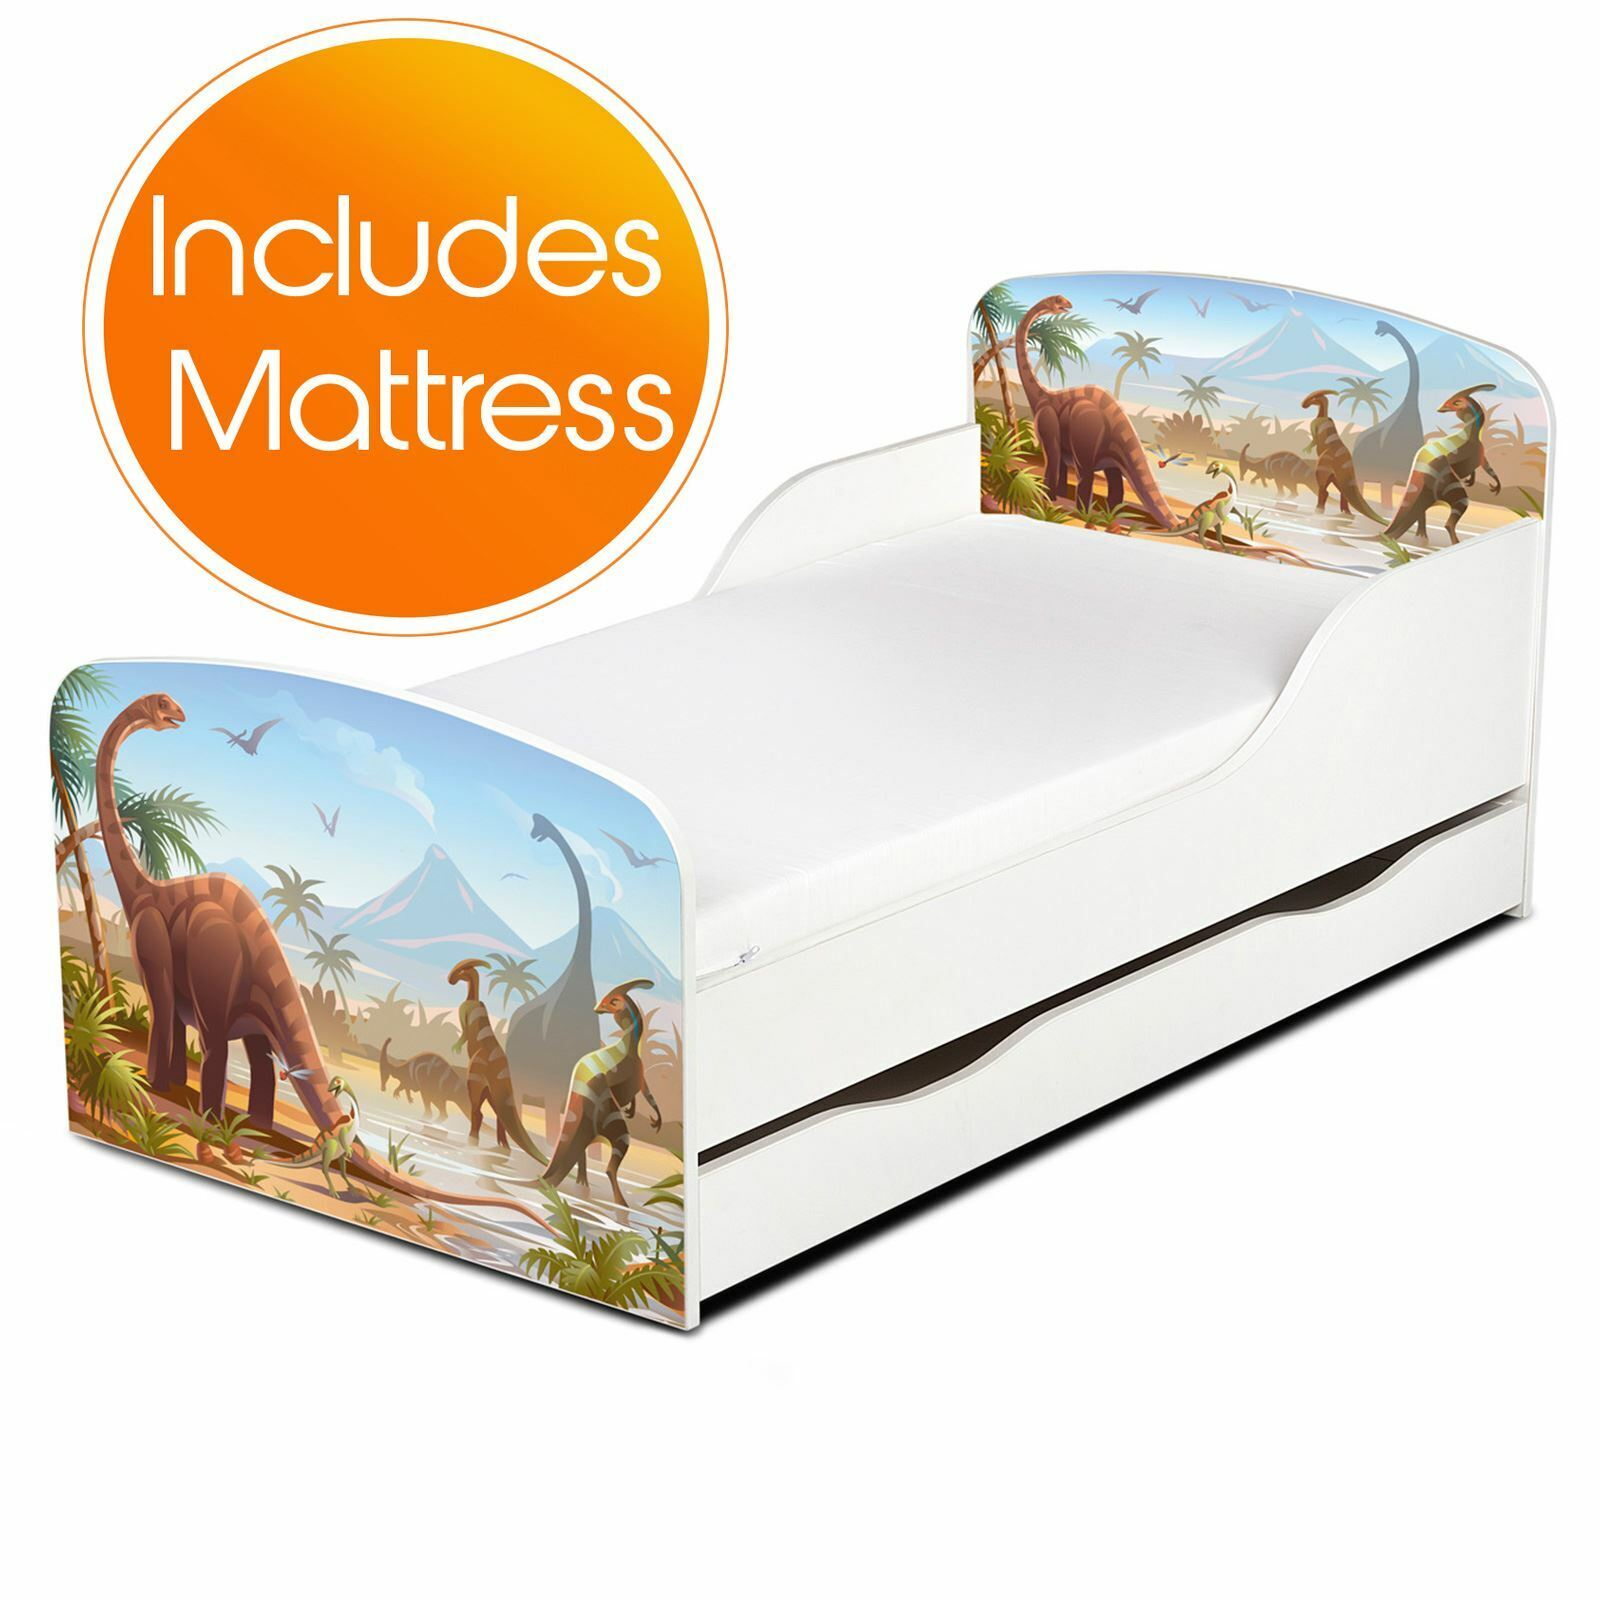 Price Right Home Jurassic Dinosaurs Storage Baby Bed + Deluxe Foam Mattress